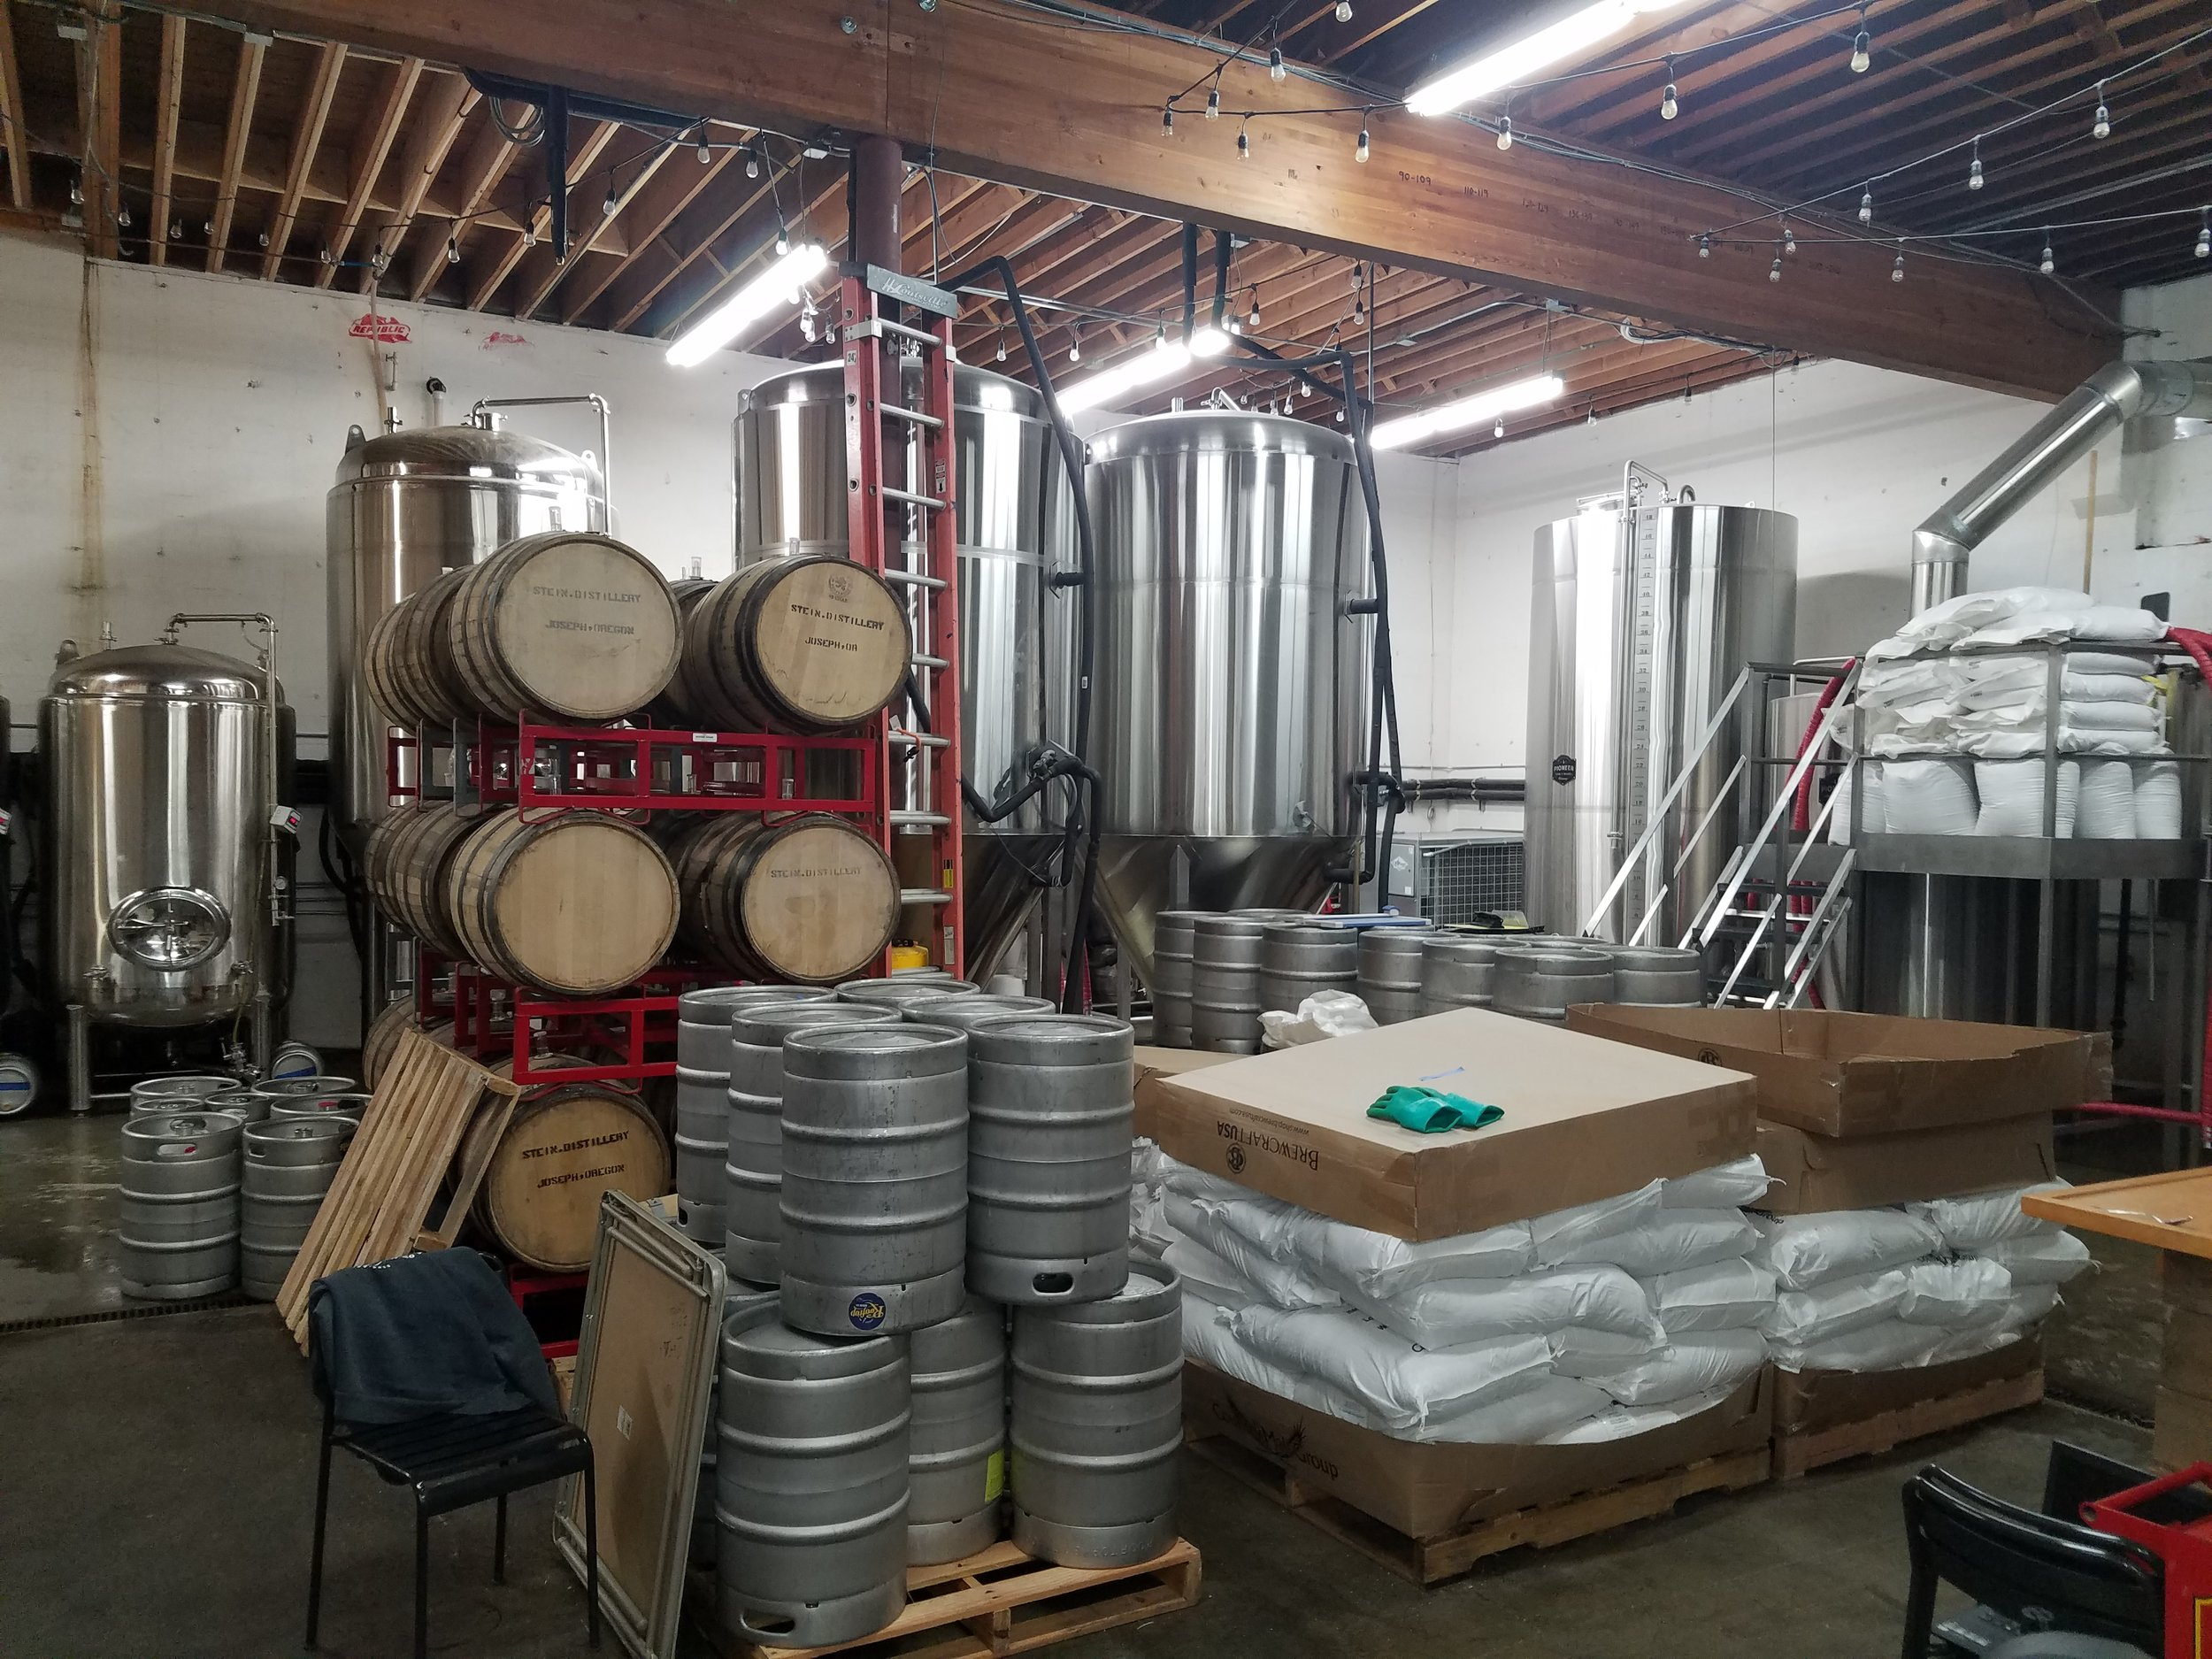 I can't really imagine the room for events down here, but Craig says it cleans up nicely! There's the 15 bbl kettle off to the right and all their 30 bbl ferms in the back behind the barrels.